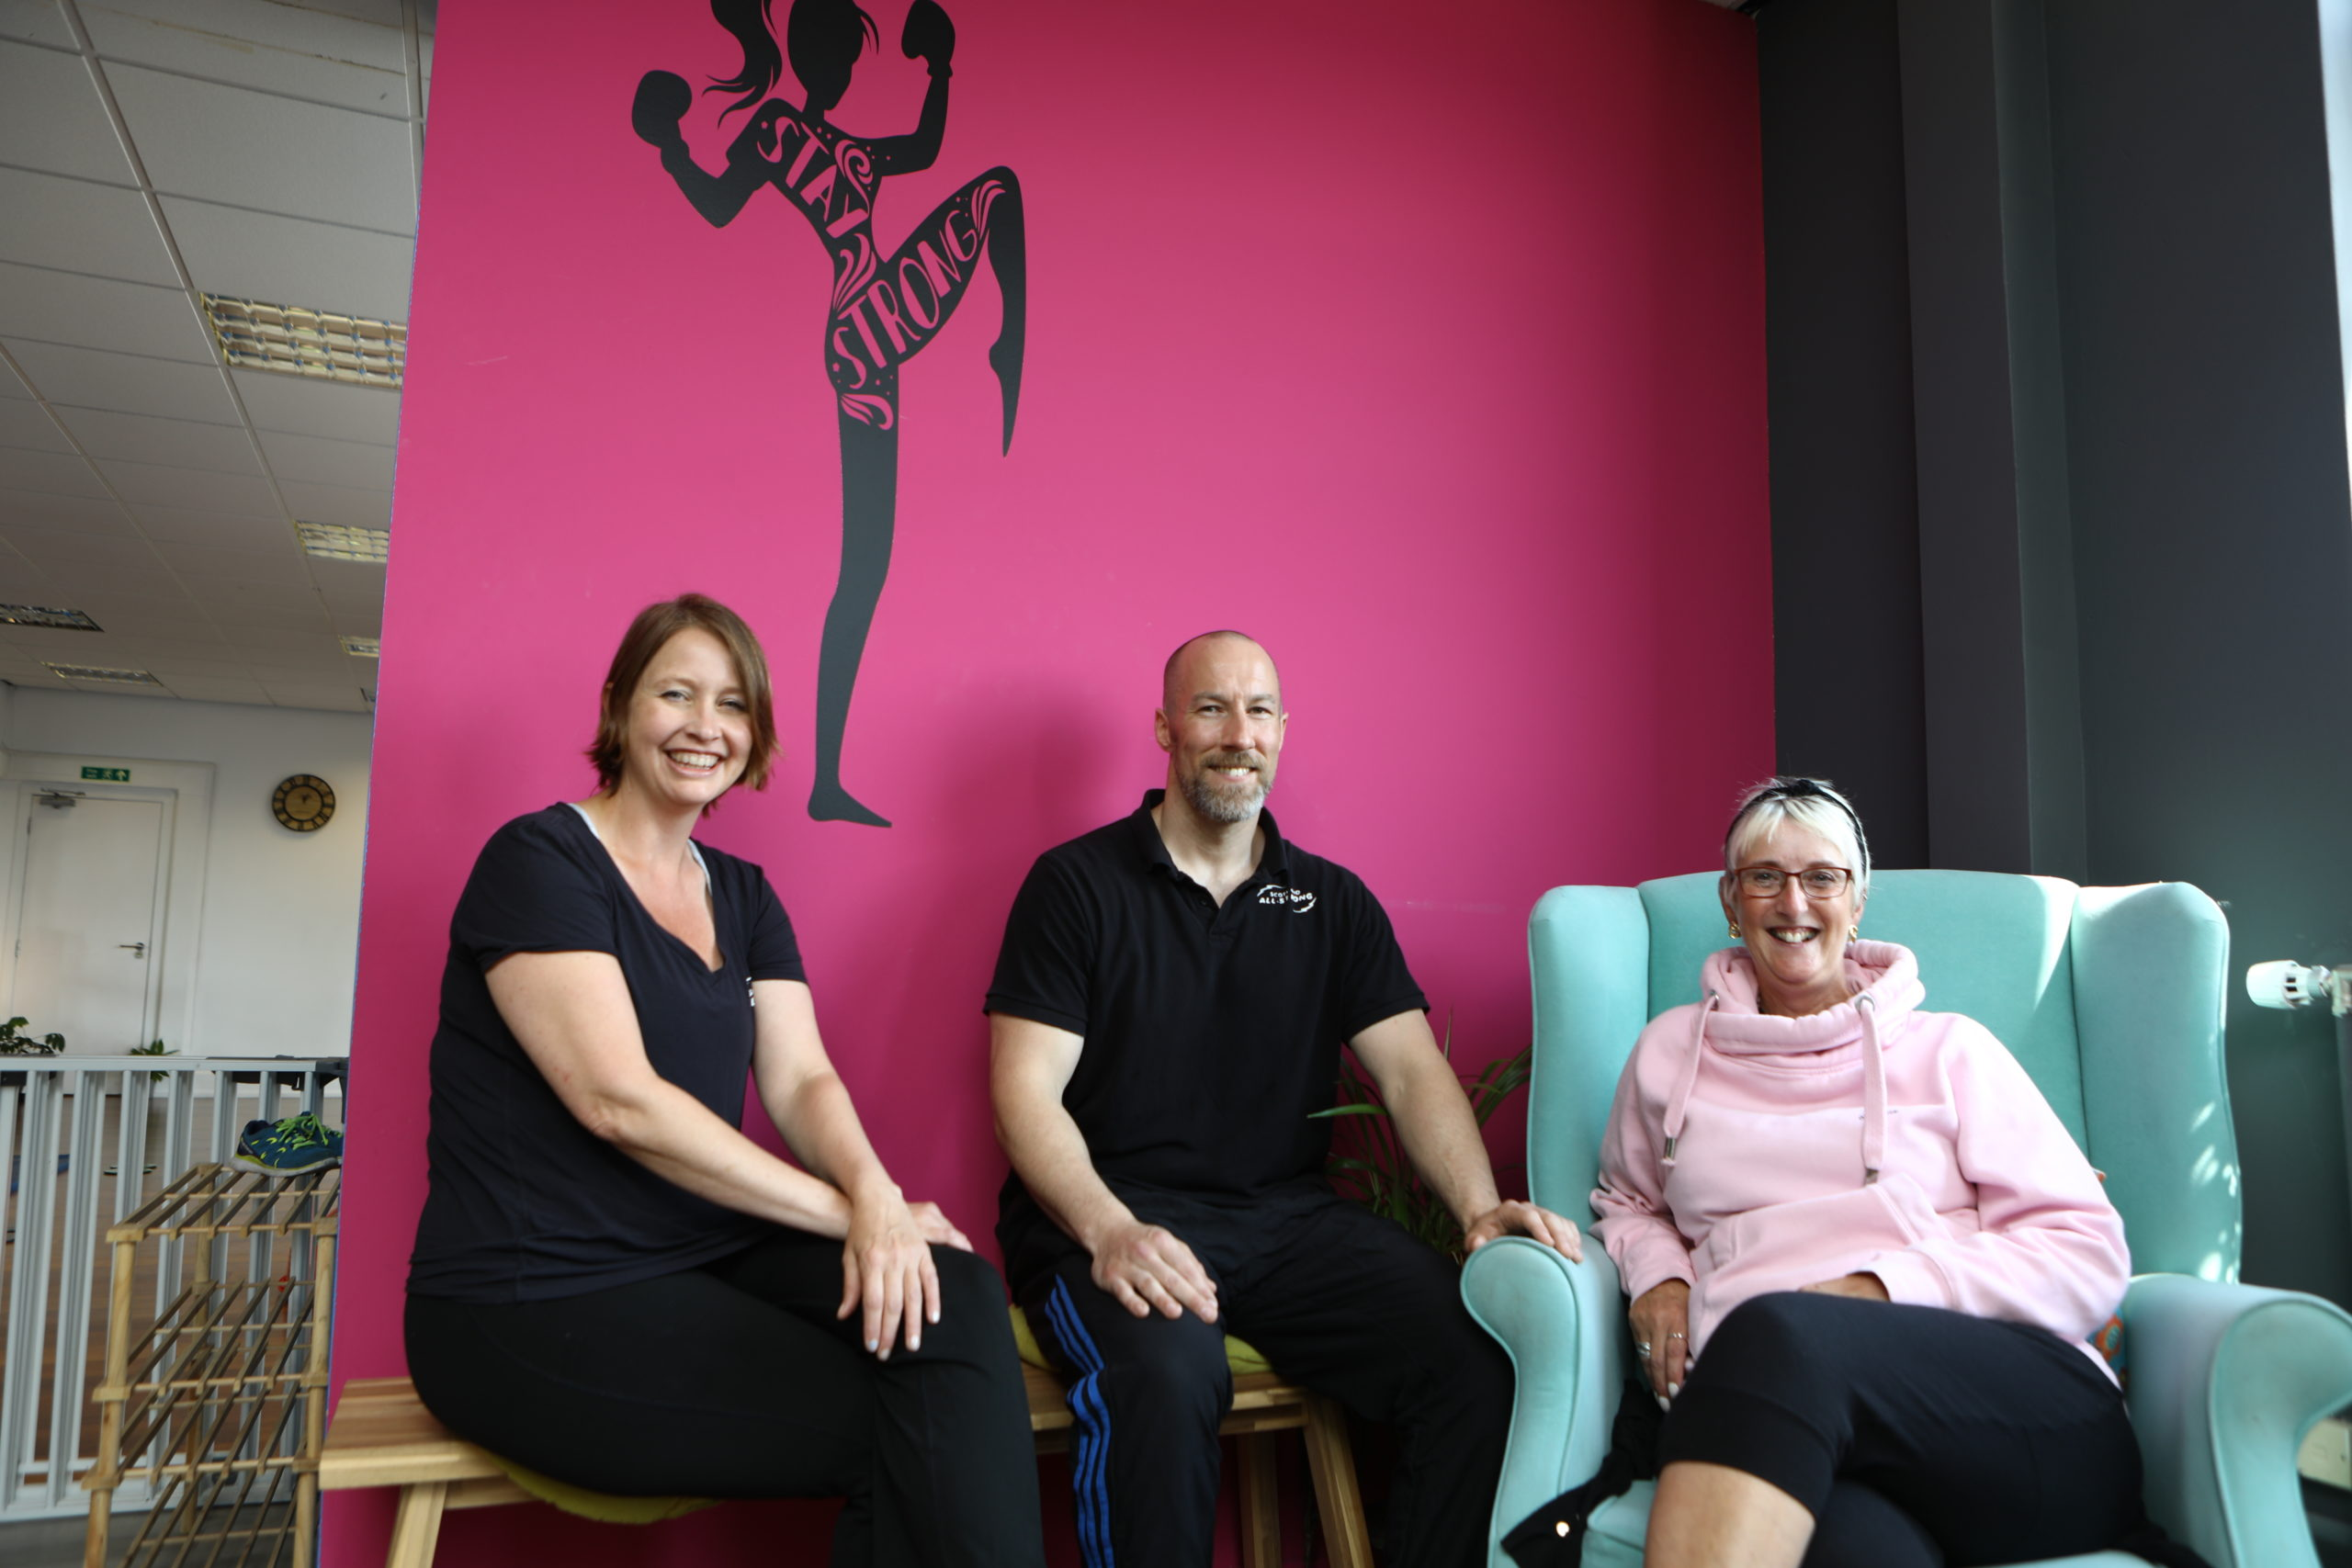 Jessica and Andy Douglas of Scotland All-Strong, and Linda Fisken. Picture: Dougie Nicolson.